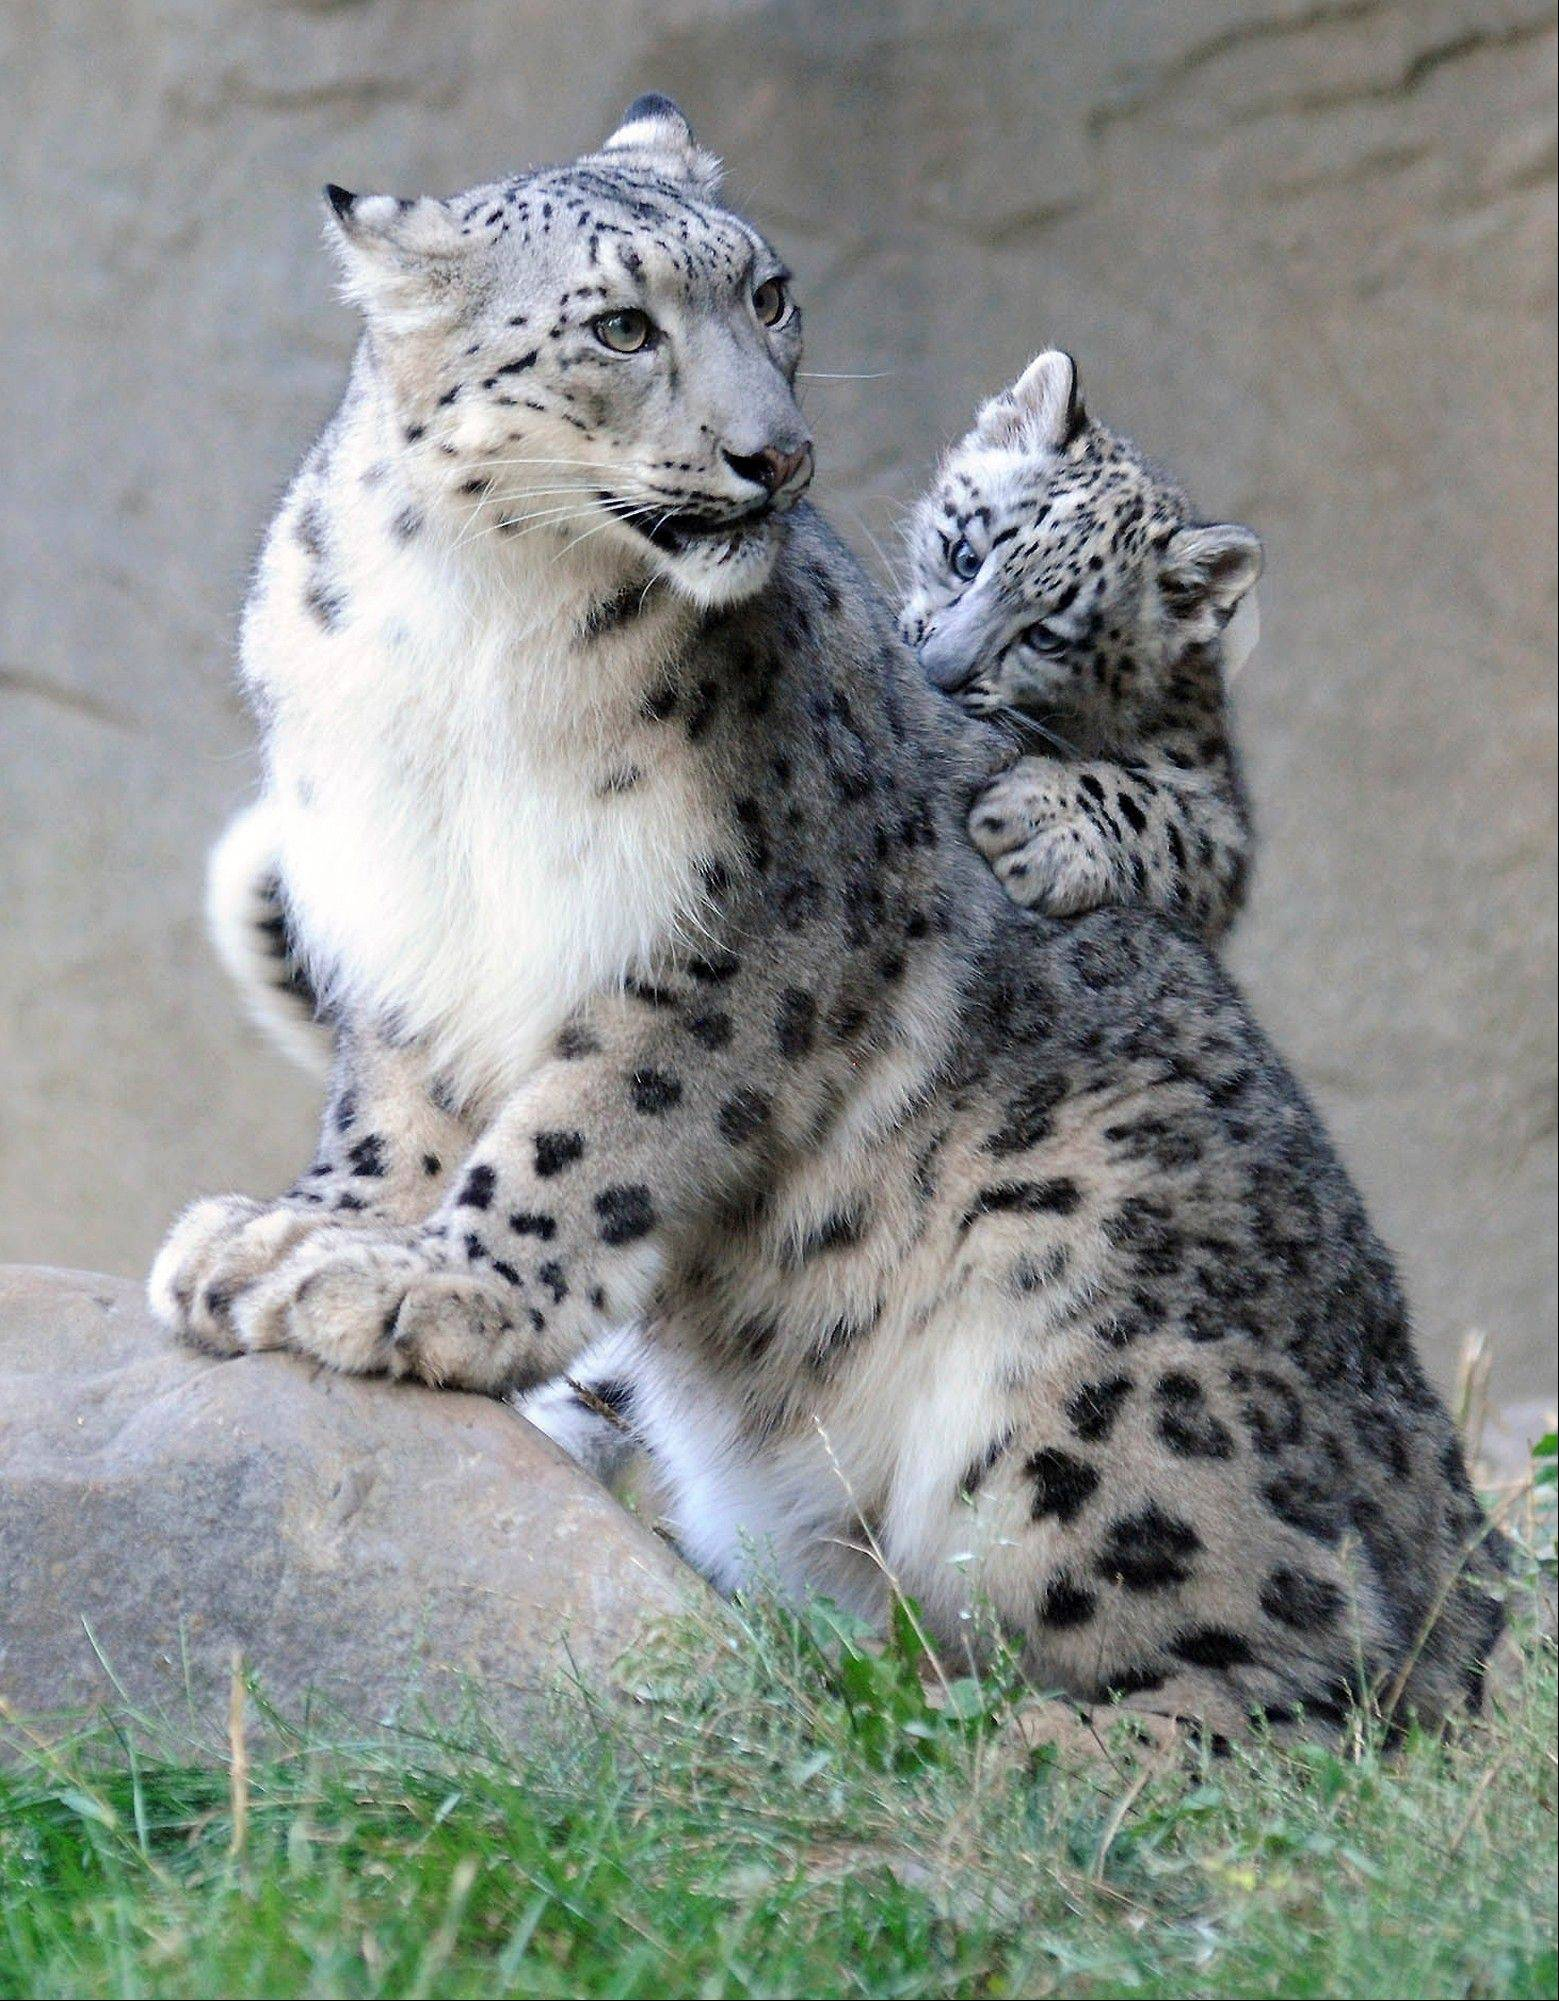 A 3-month-old snow leopard cub, born June 13, plays with his 3-year-old mother, Sarani, at the Brookfield Zoo in Brookfield. The cub made his public debut at the zoo Wednesday. Snow leopards are considered an endangered species.